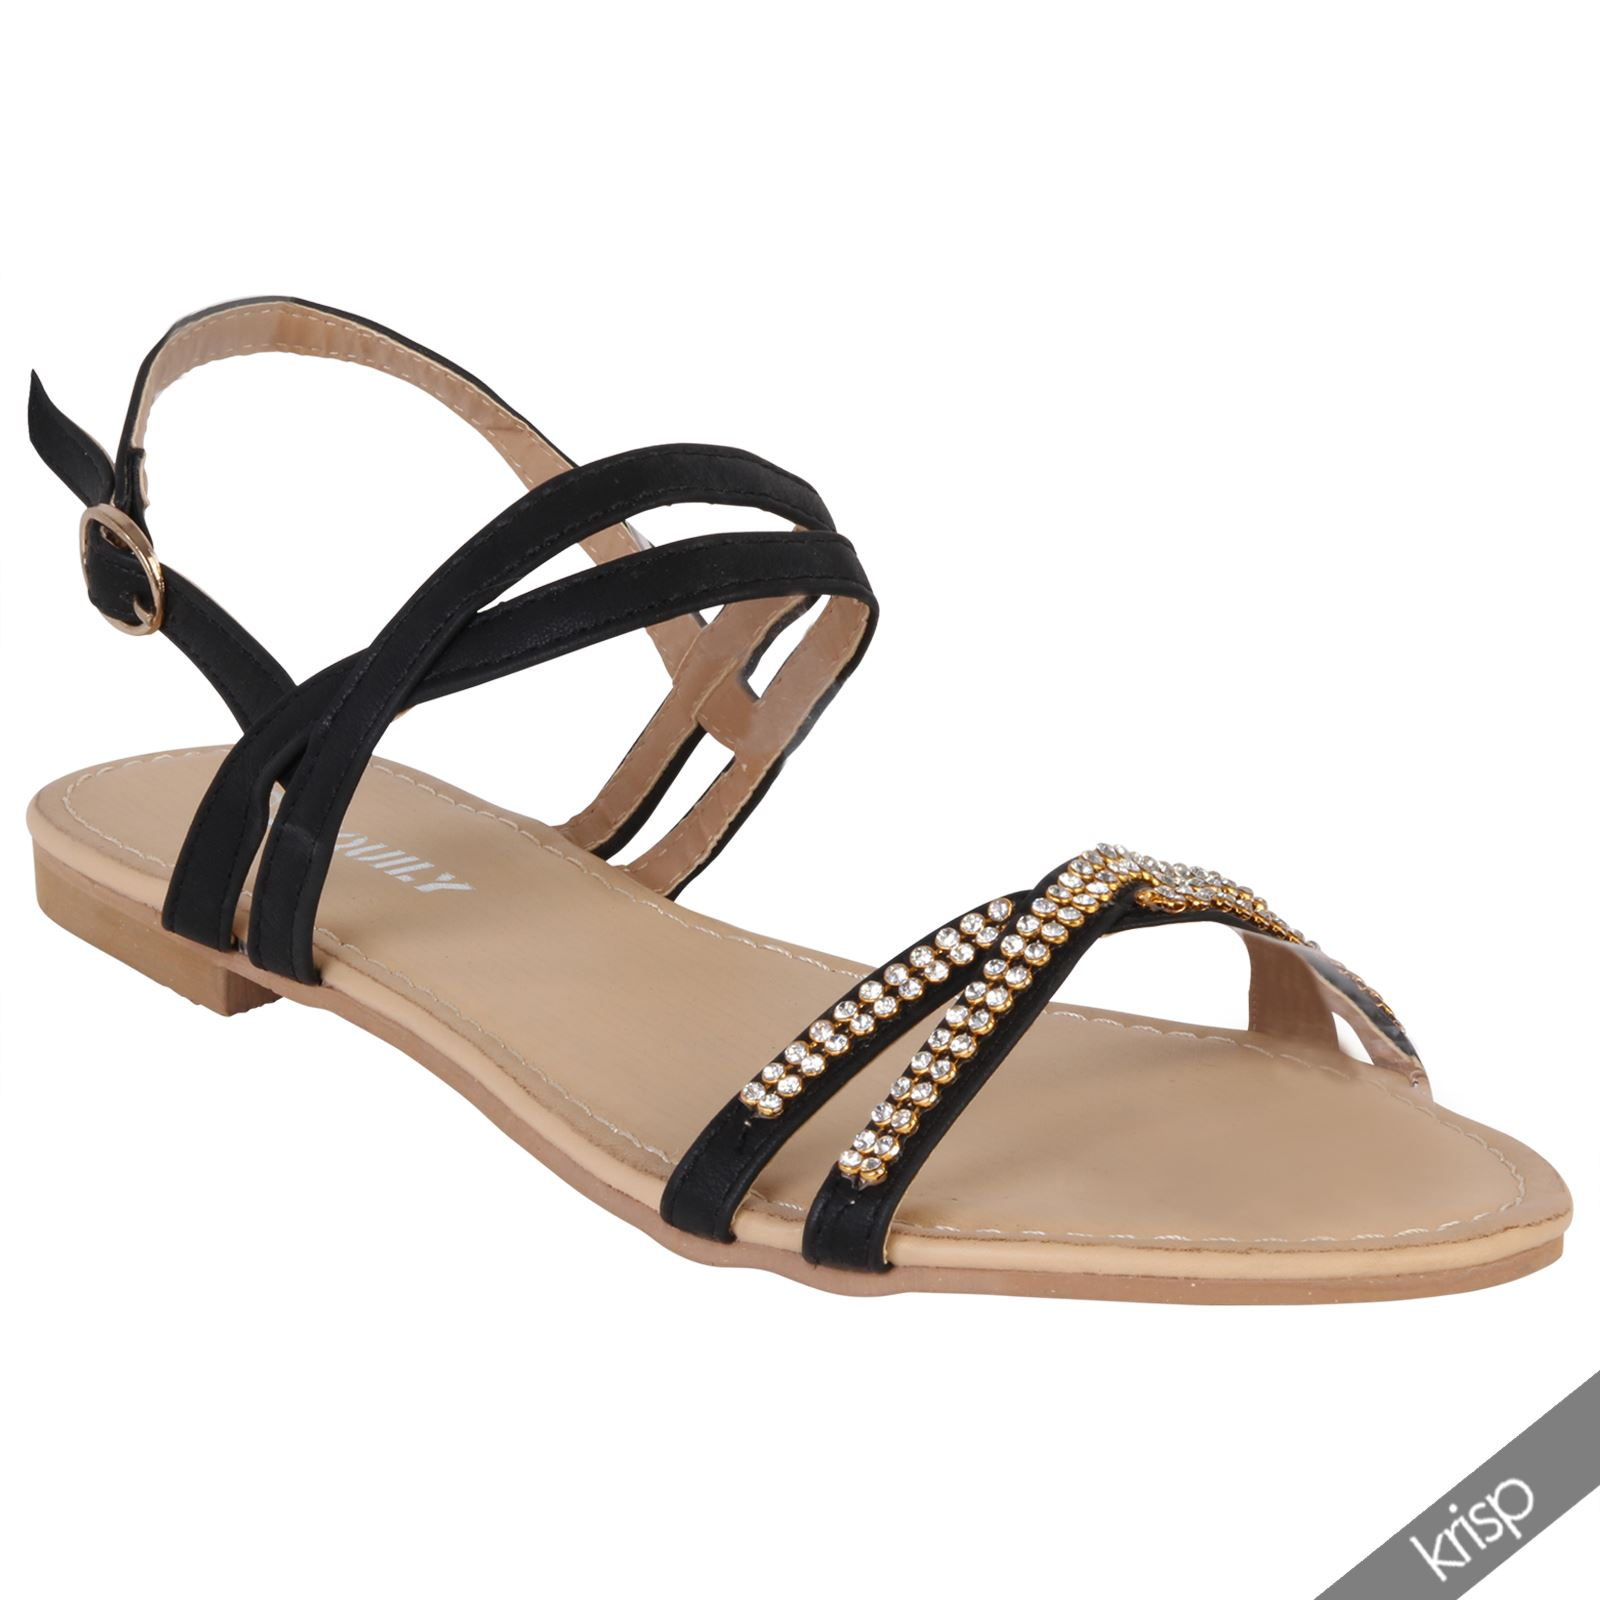 Model Clothing Shoes Amp Accessories Gt Women39s Shoes Gt Sandals Amp F